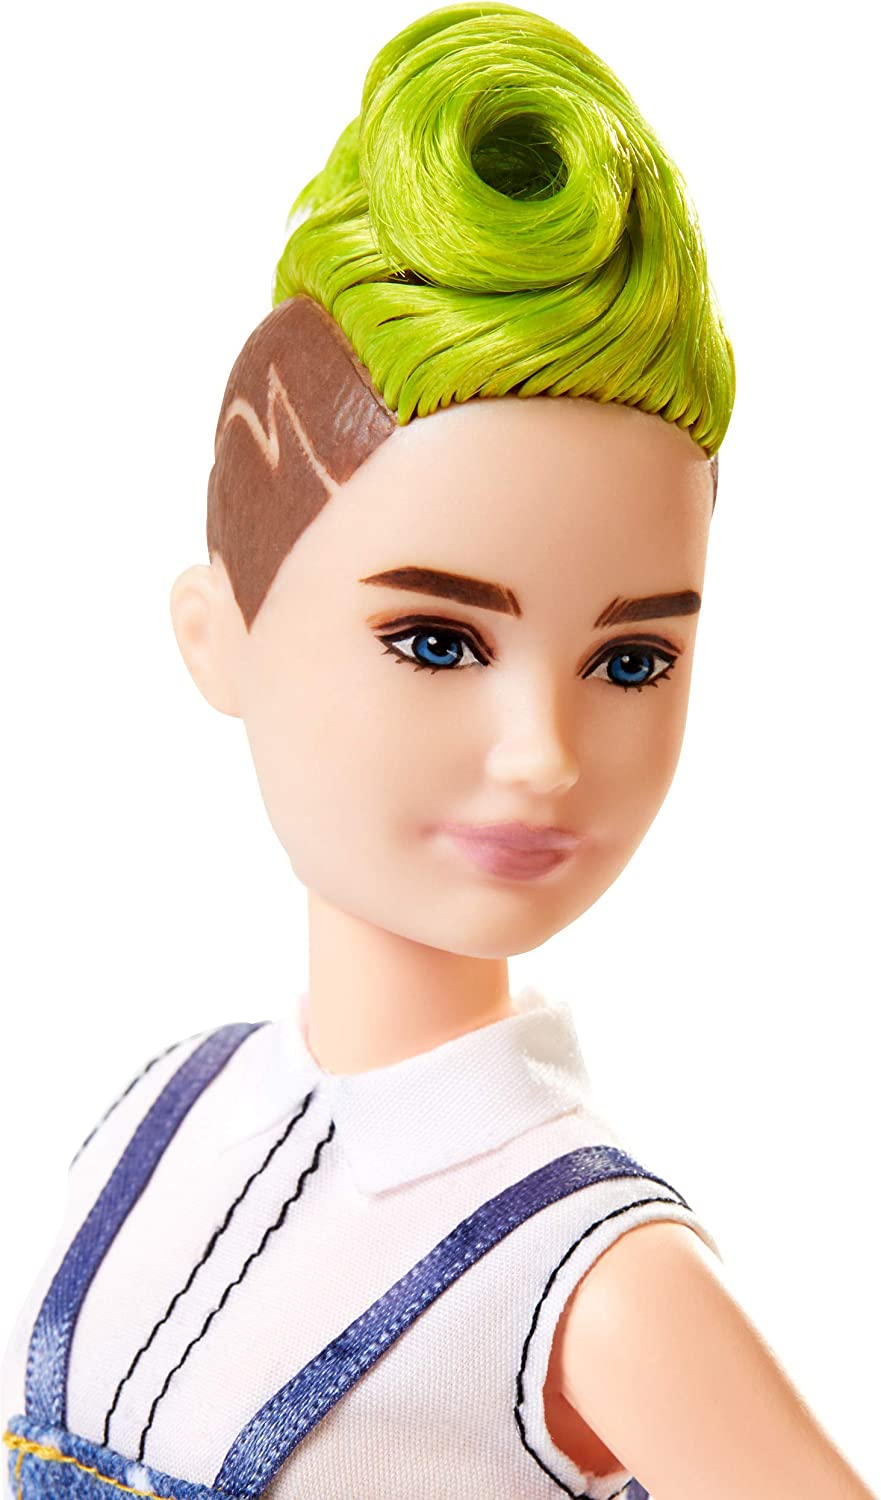 Barbie Fashionistas Doll 124 Petite with Green Mohawk and Denim Overalls